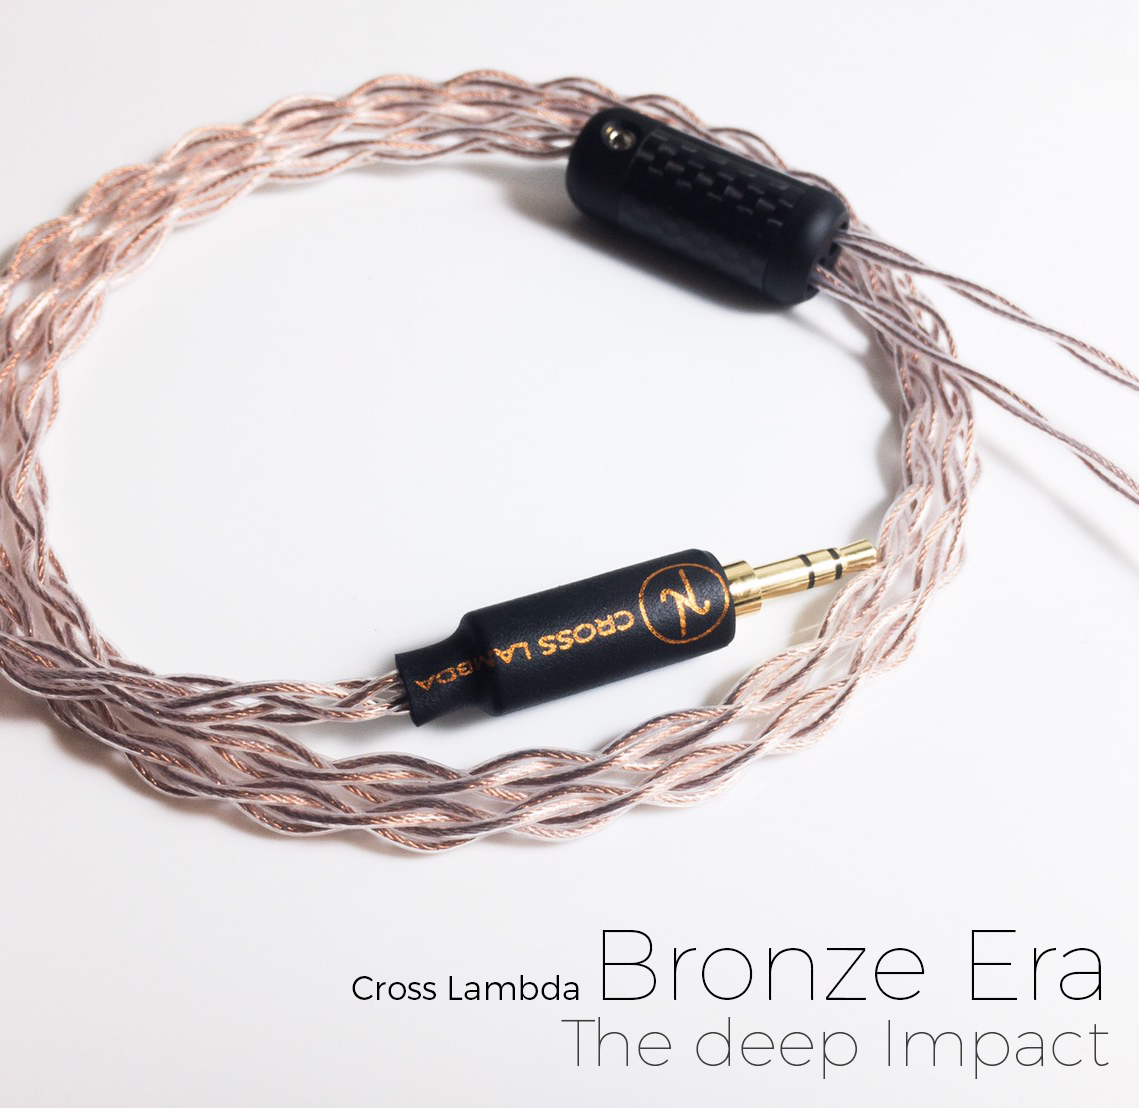 สาย Cross Lambda Bronze Era 2